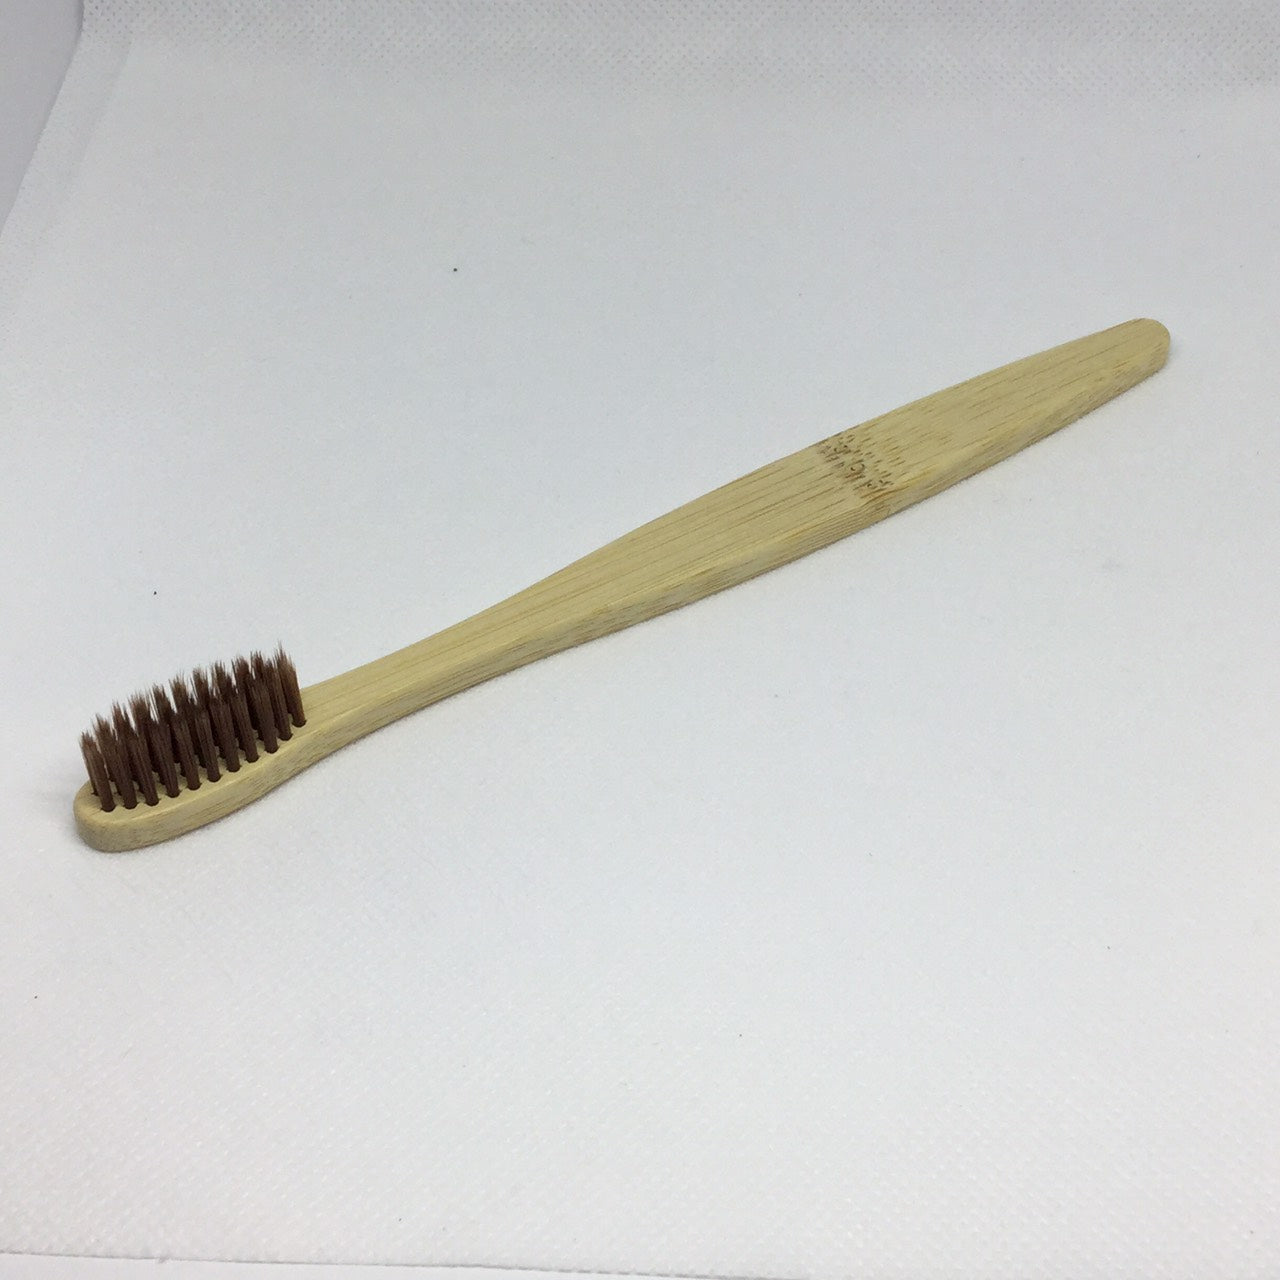 Natural Bamboo Toothbrush with Soft Charcoal Bristles - beleafgreen